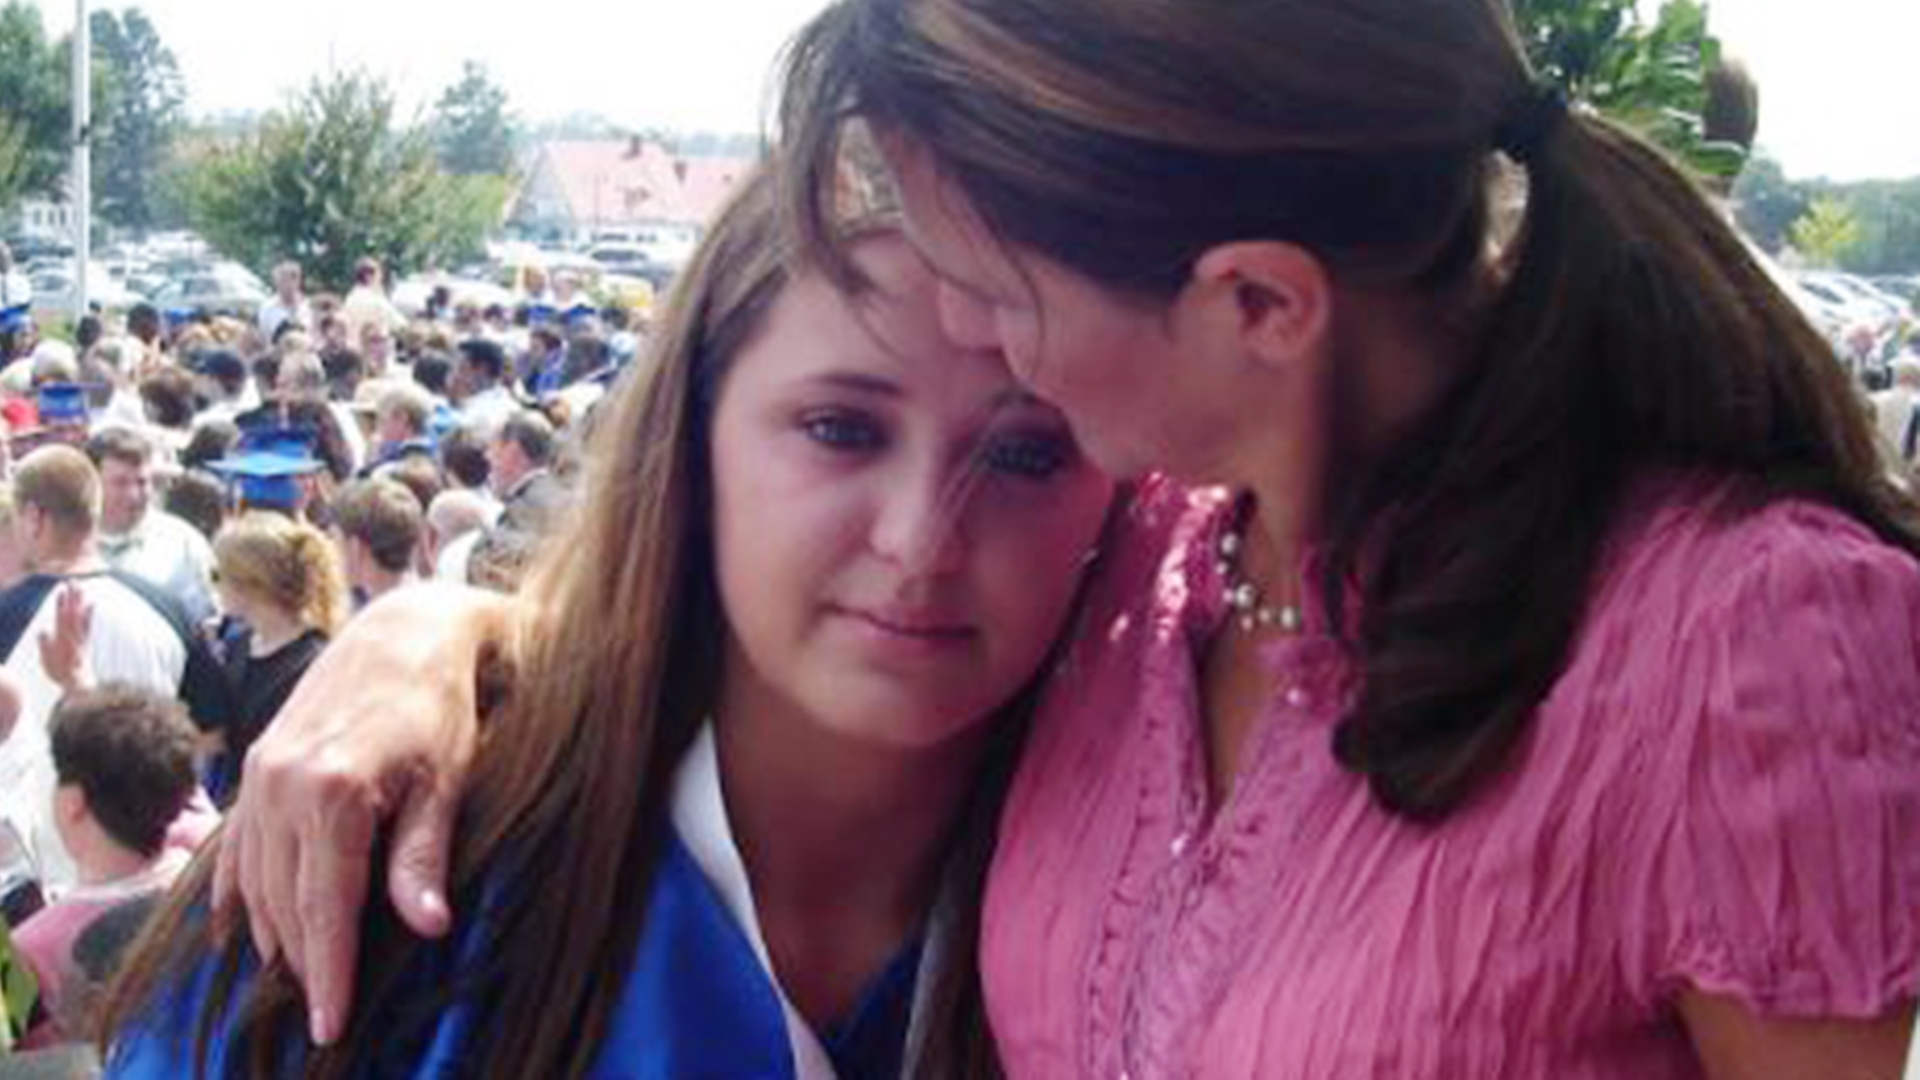 My teen daughter died by suicide